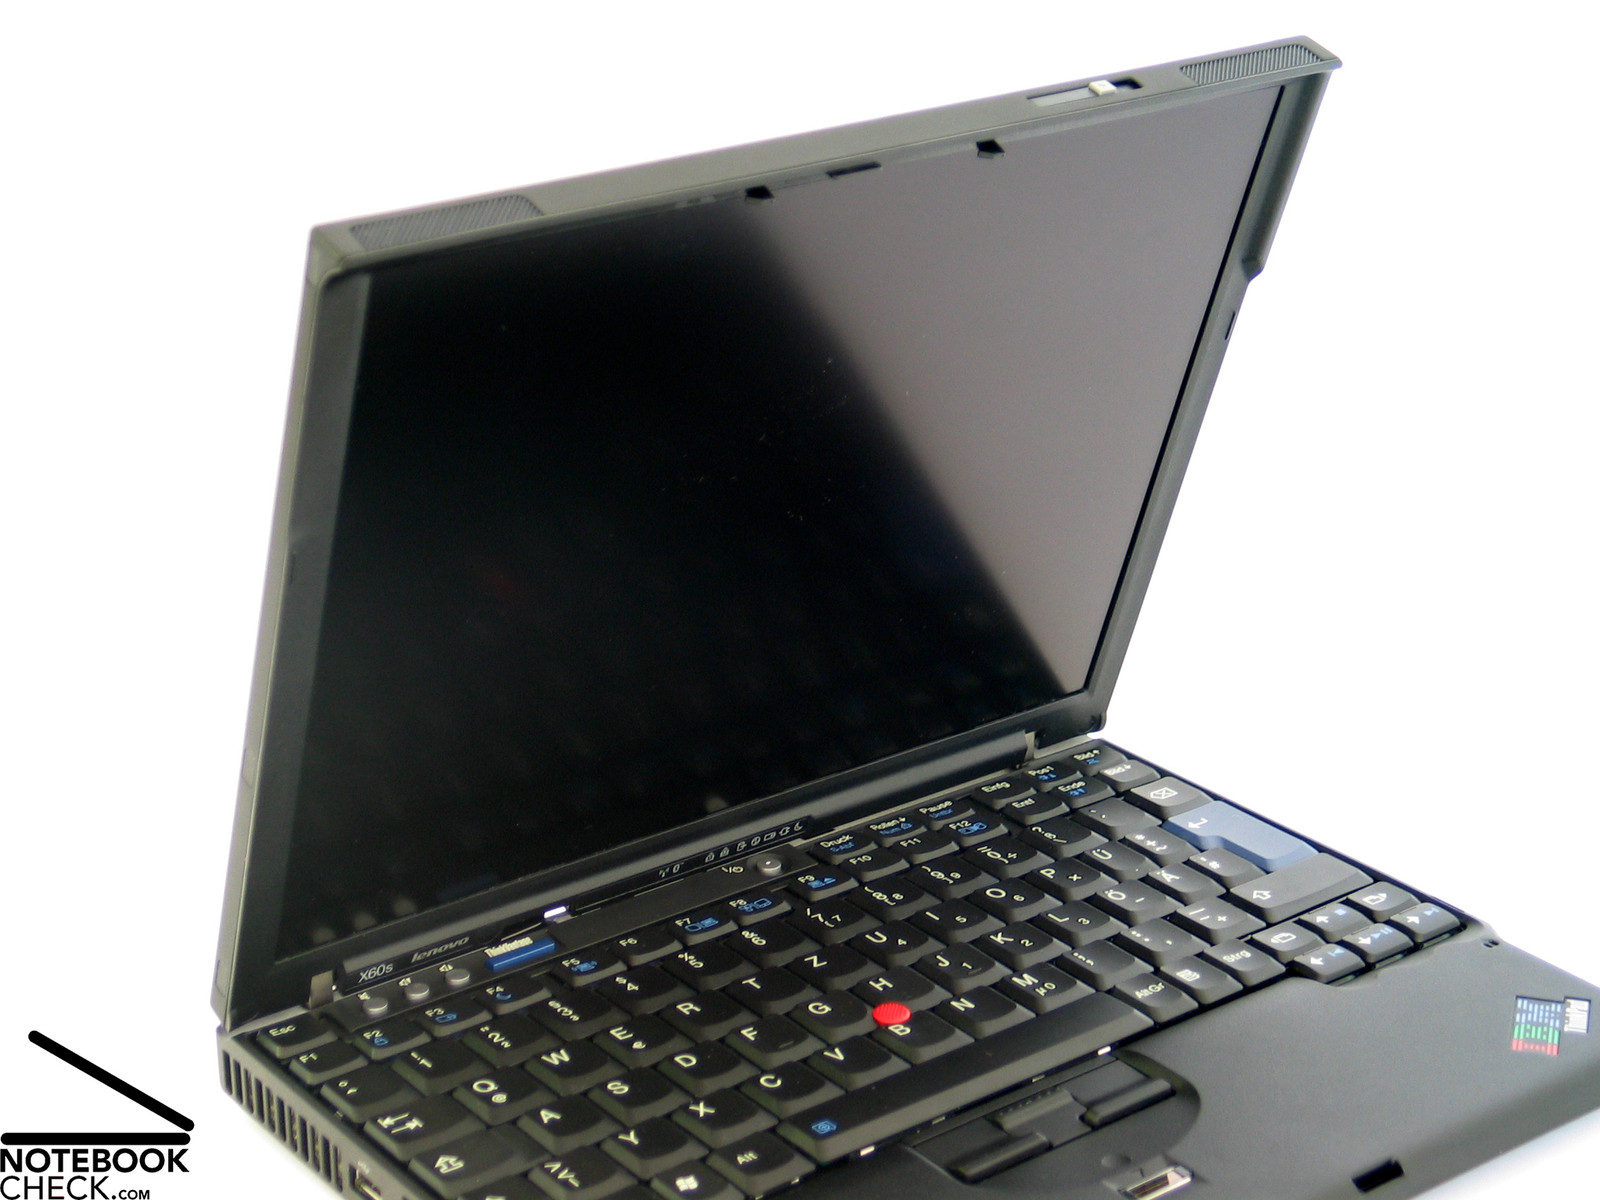 THINKPAD X60 DOWNLOAD DRIVERS